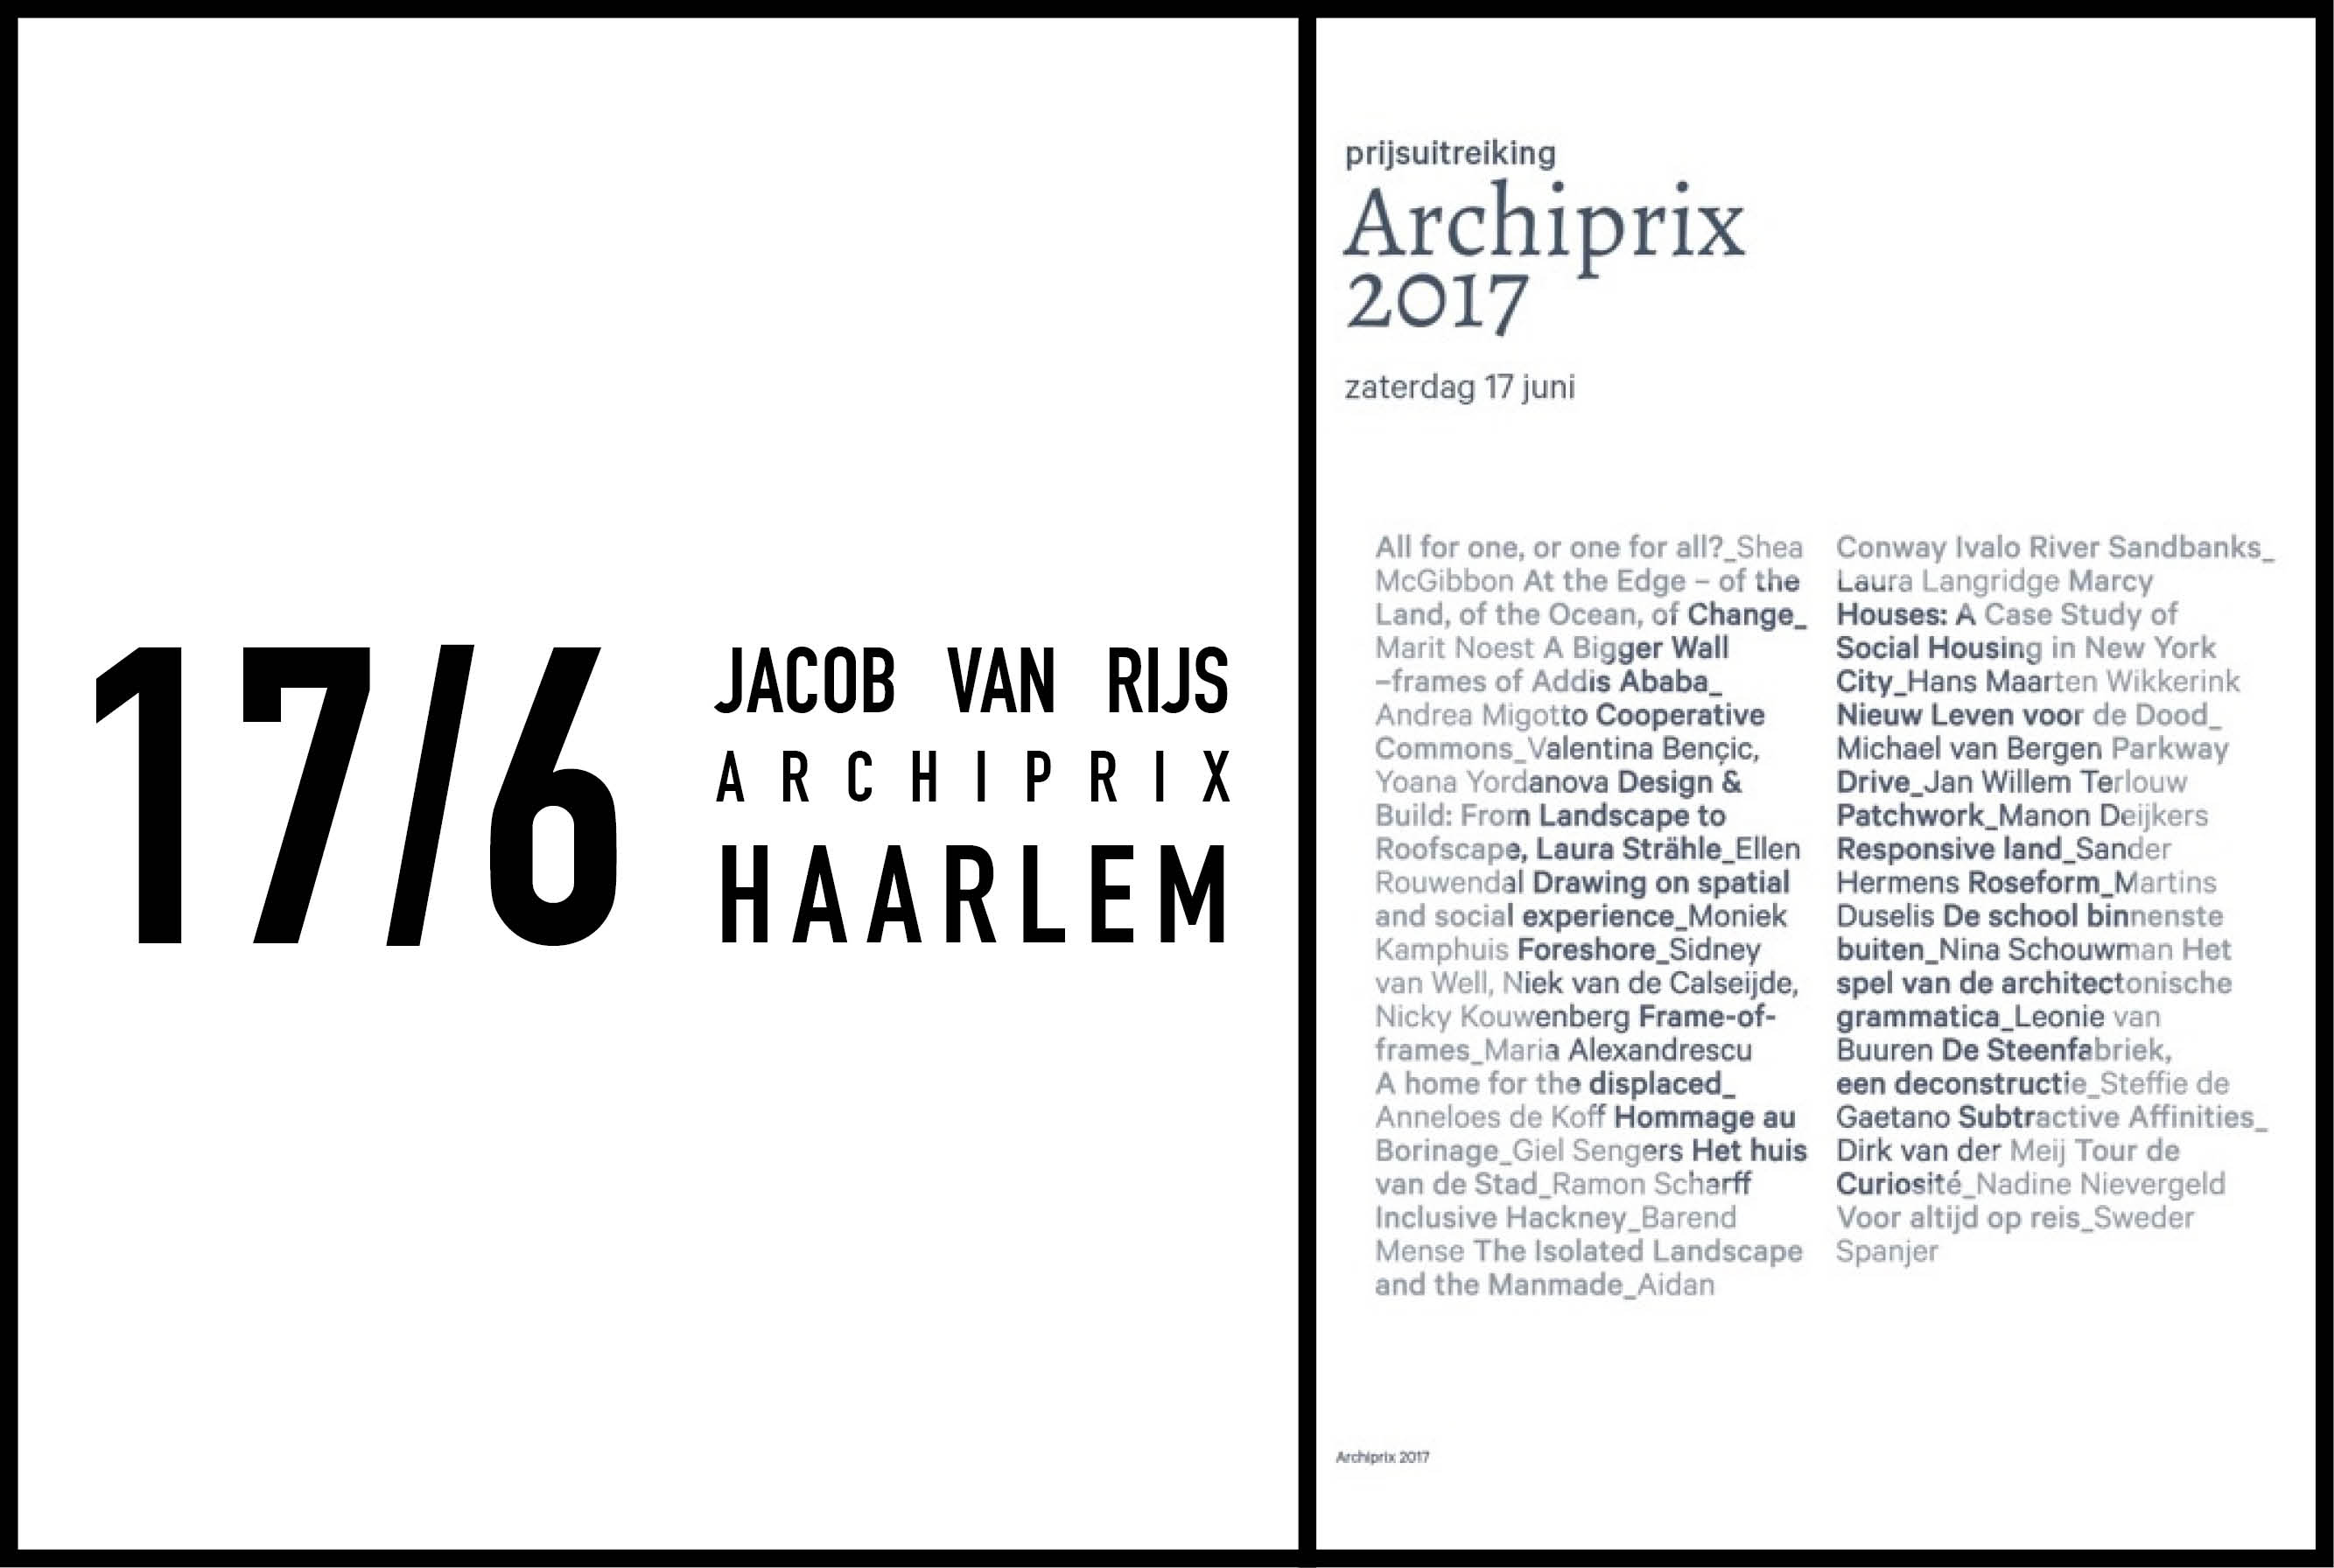 Jacob van Rijs to give opening speech at Archiprix Netherlands Awards, 17 June 2017